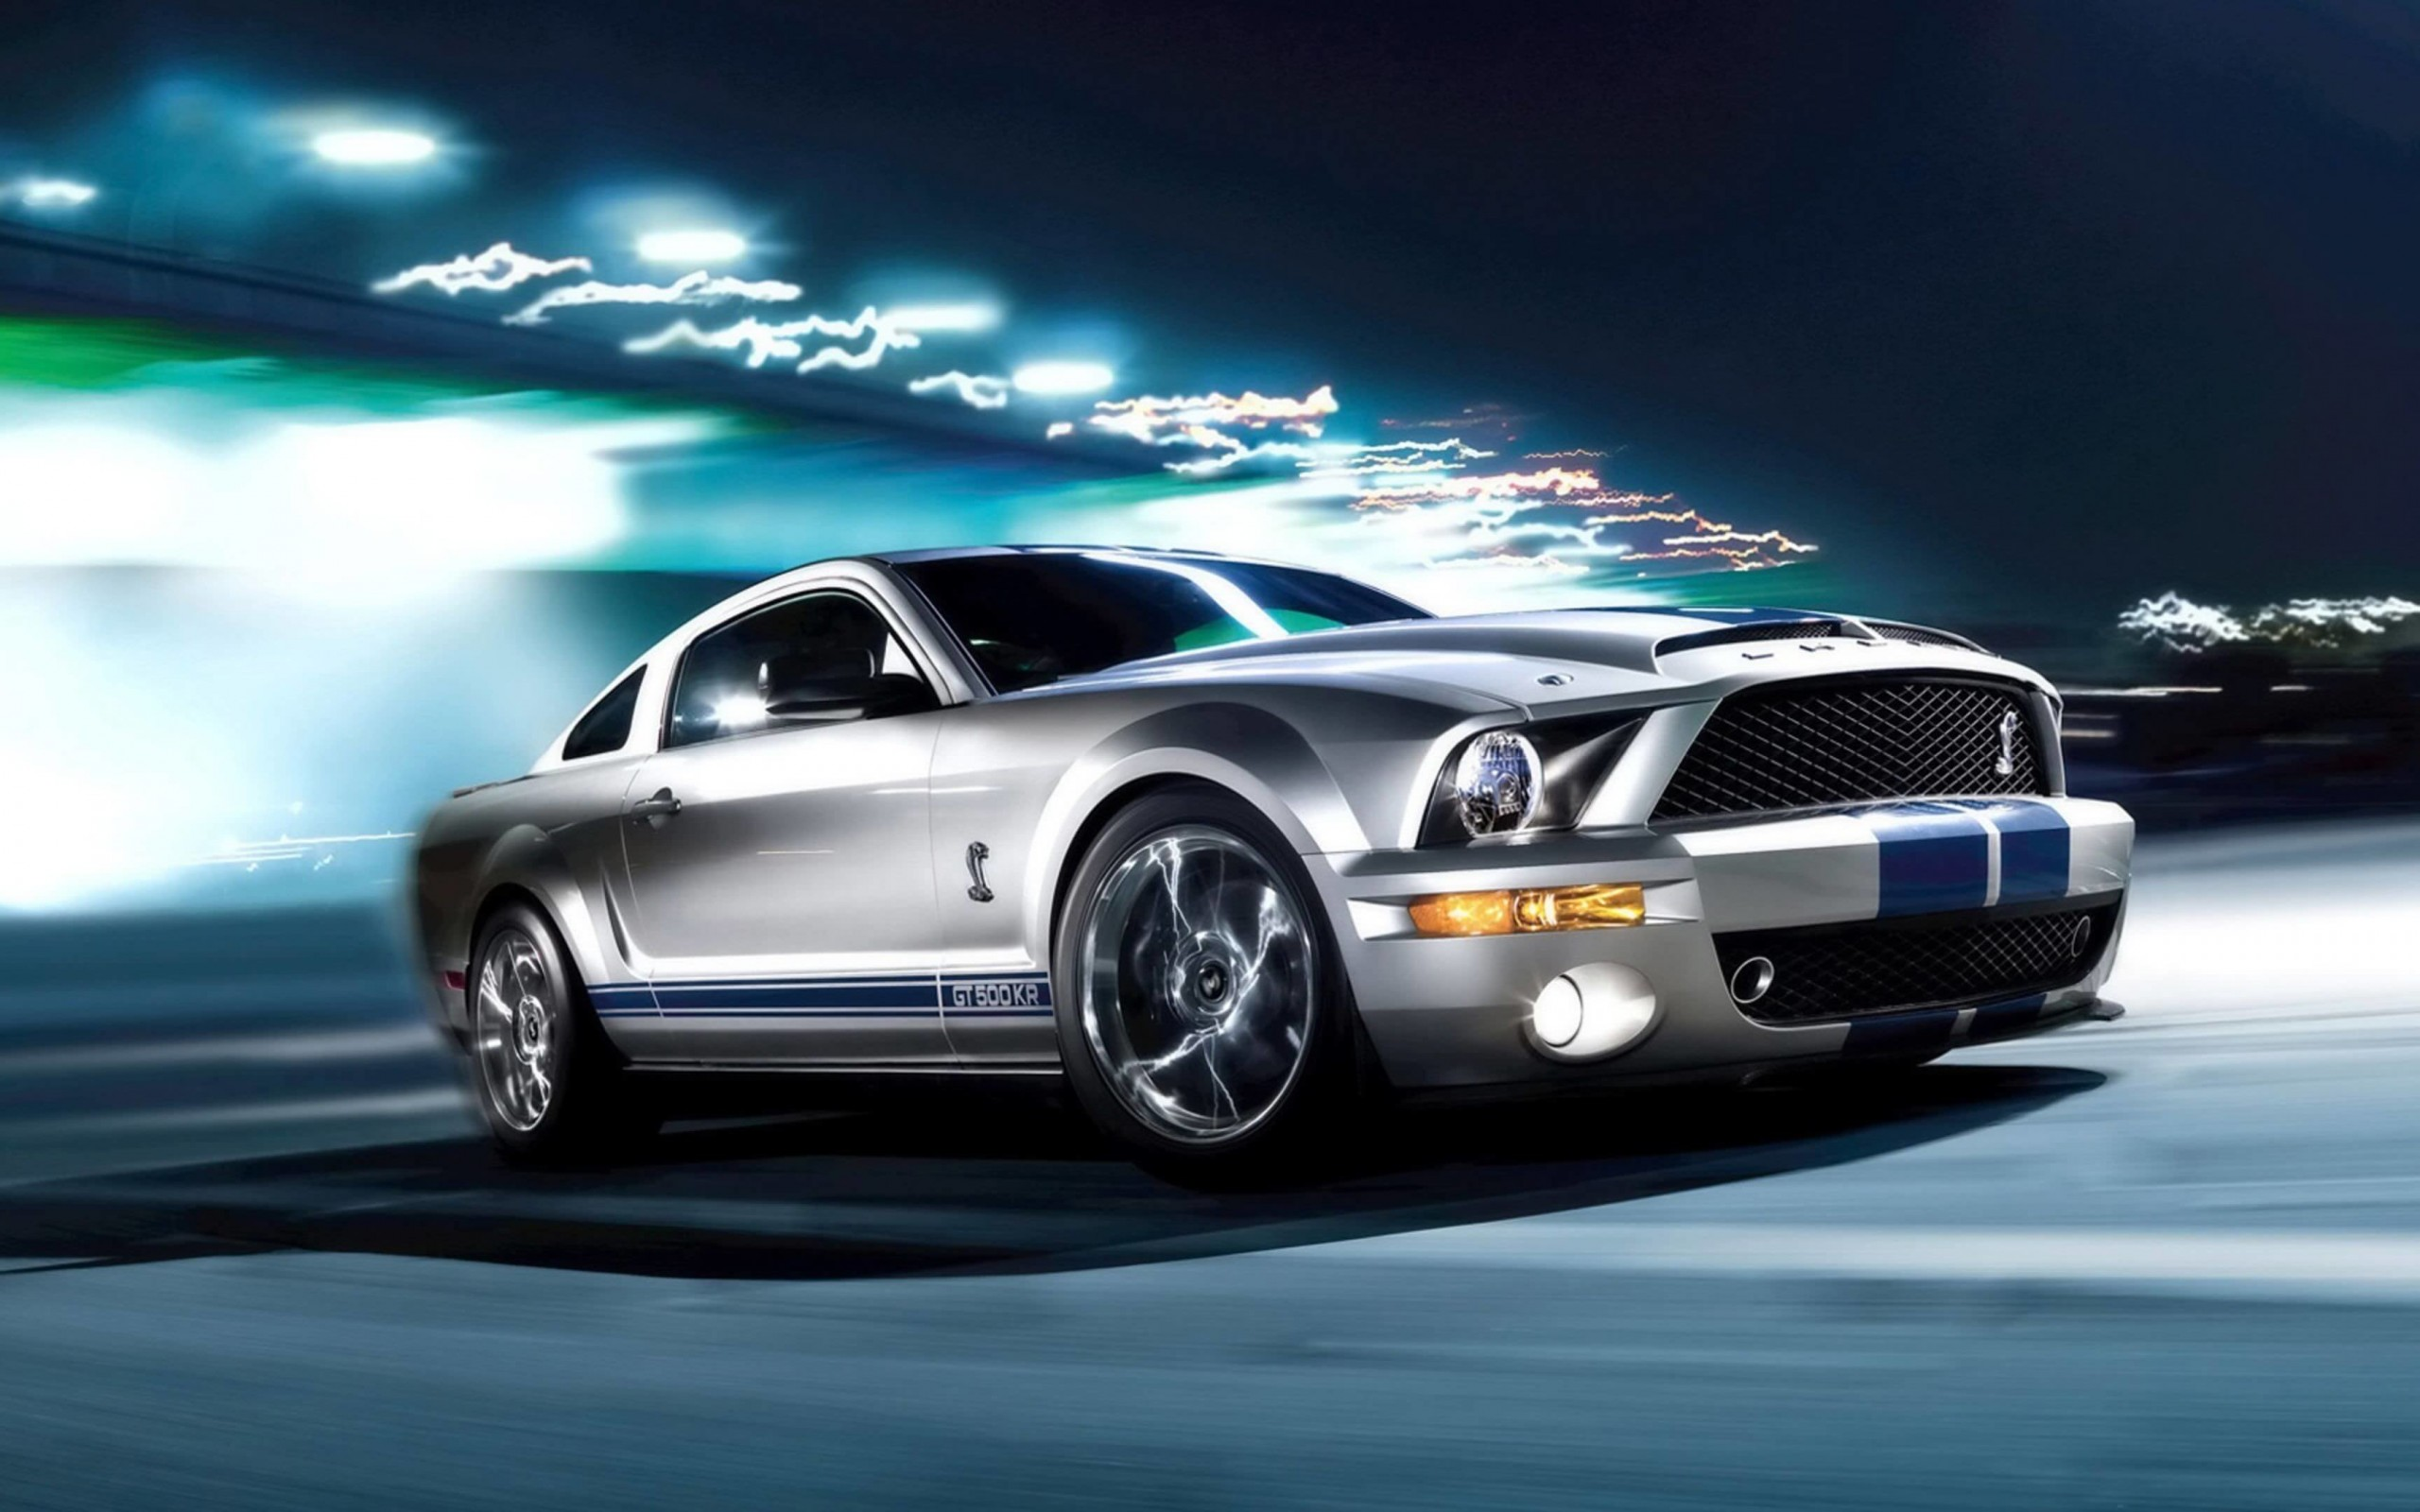 Ford Mustang Shelby GT500KR Wallpaper for Desktop 2560x1600